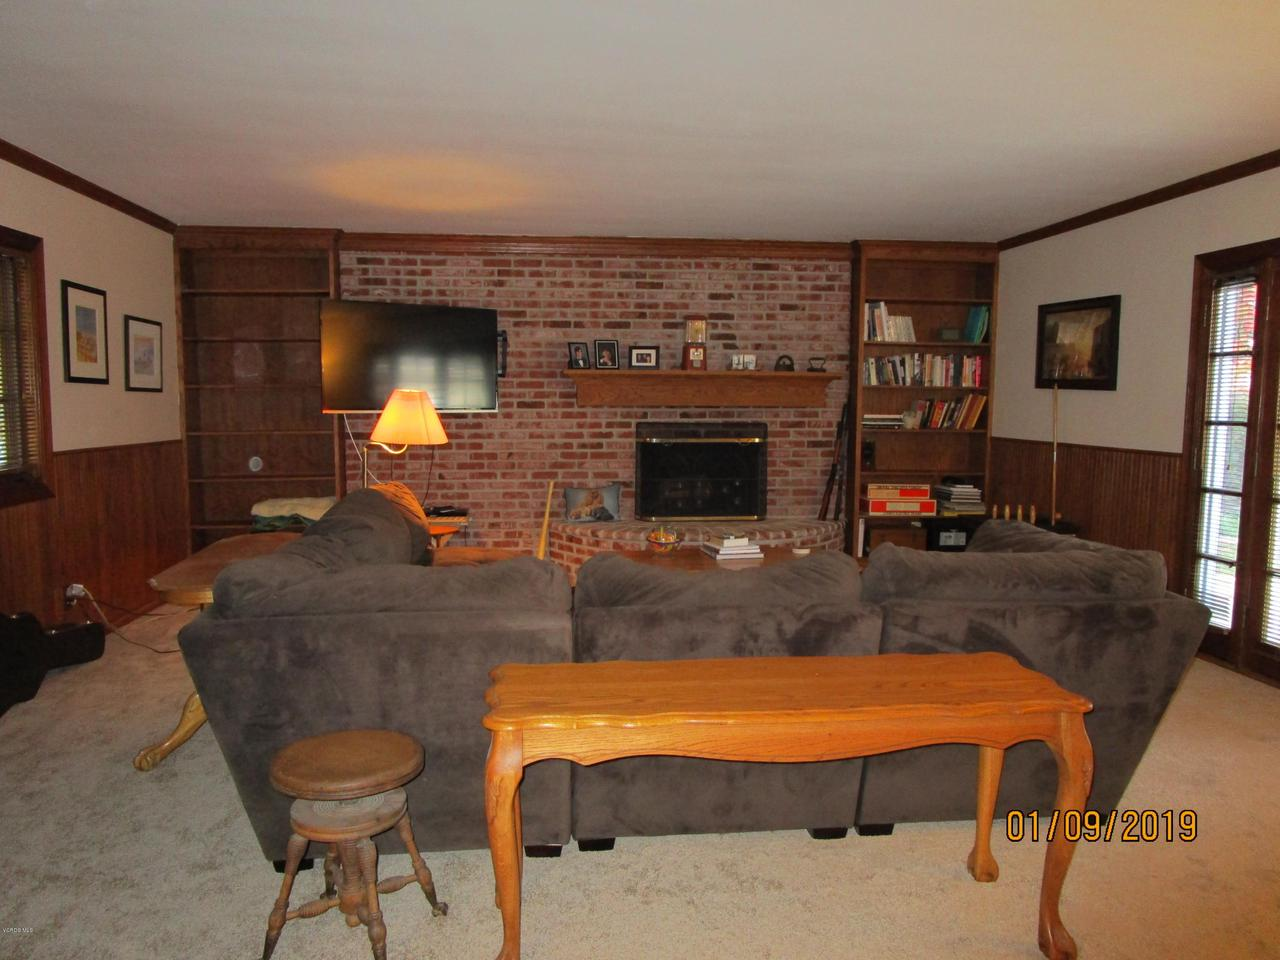 10720 TERNEZ, Moorpark, CA 93021 - Livingroom with Fireplace